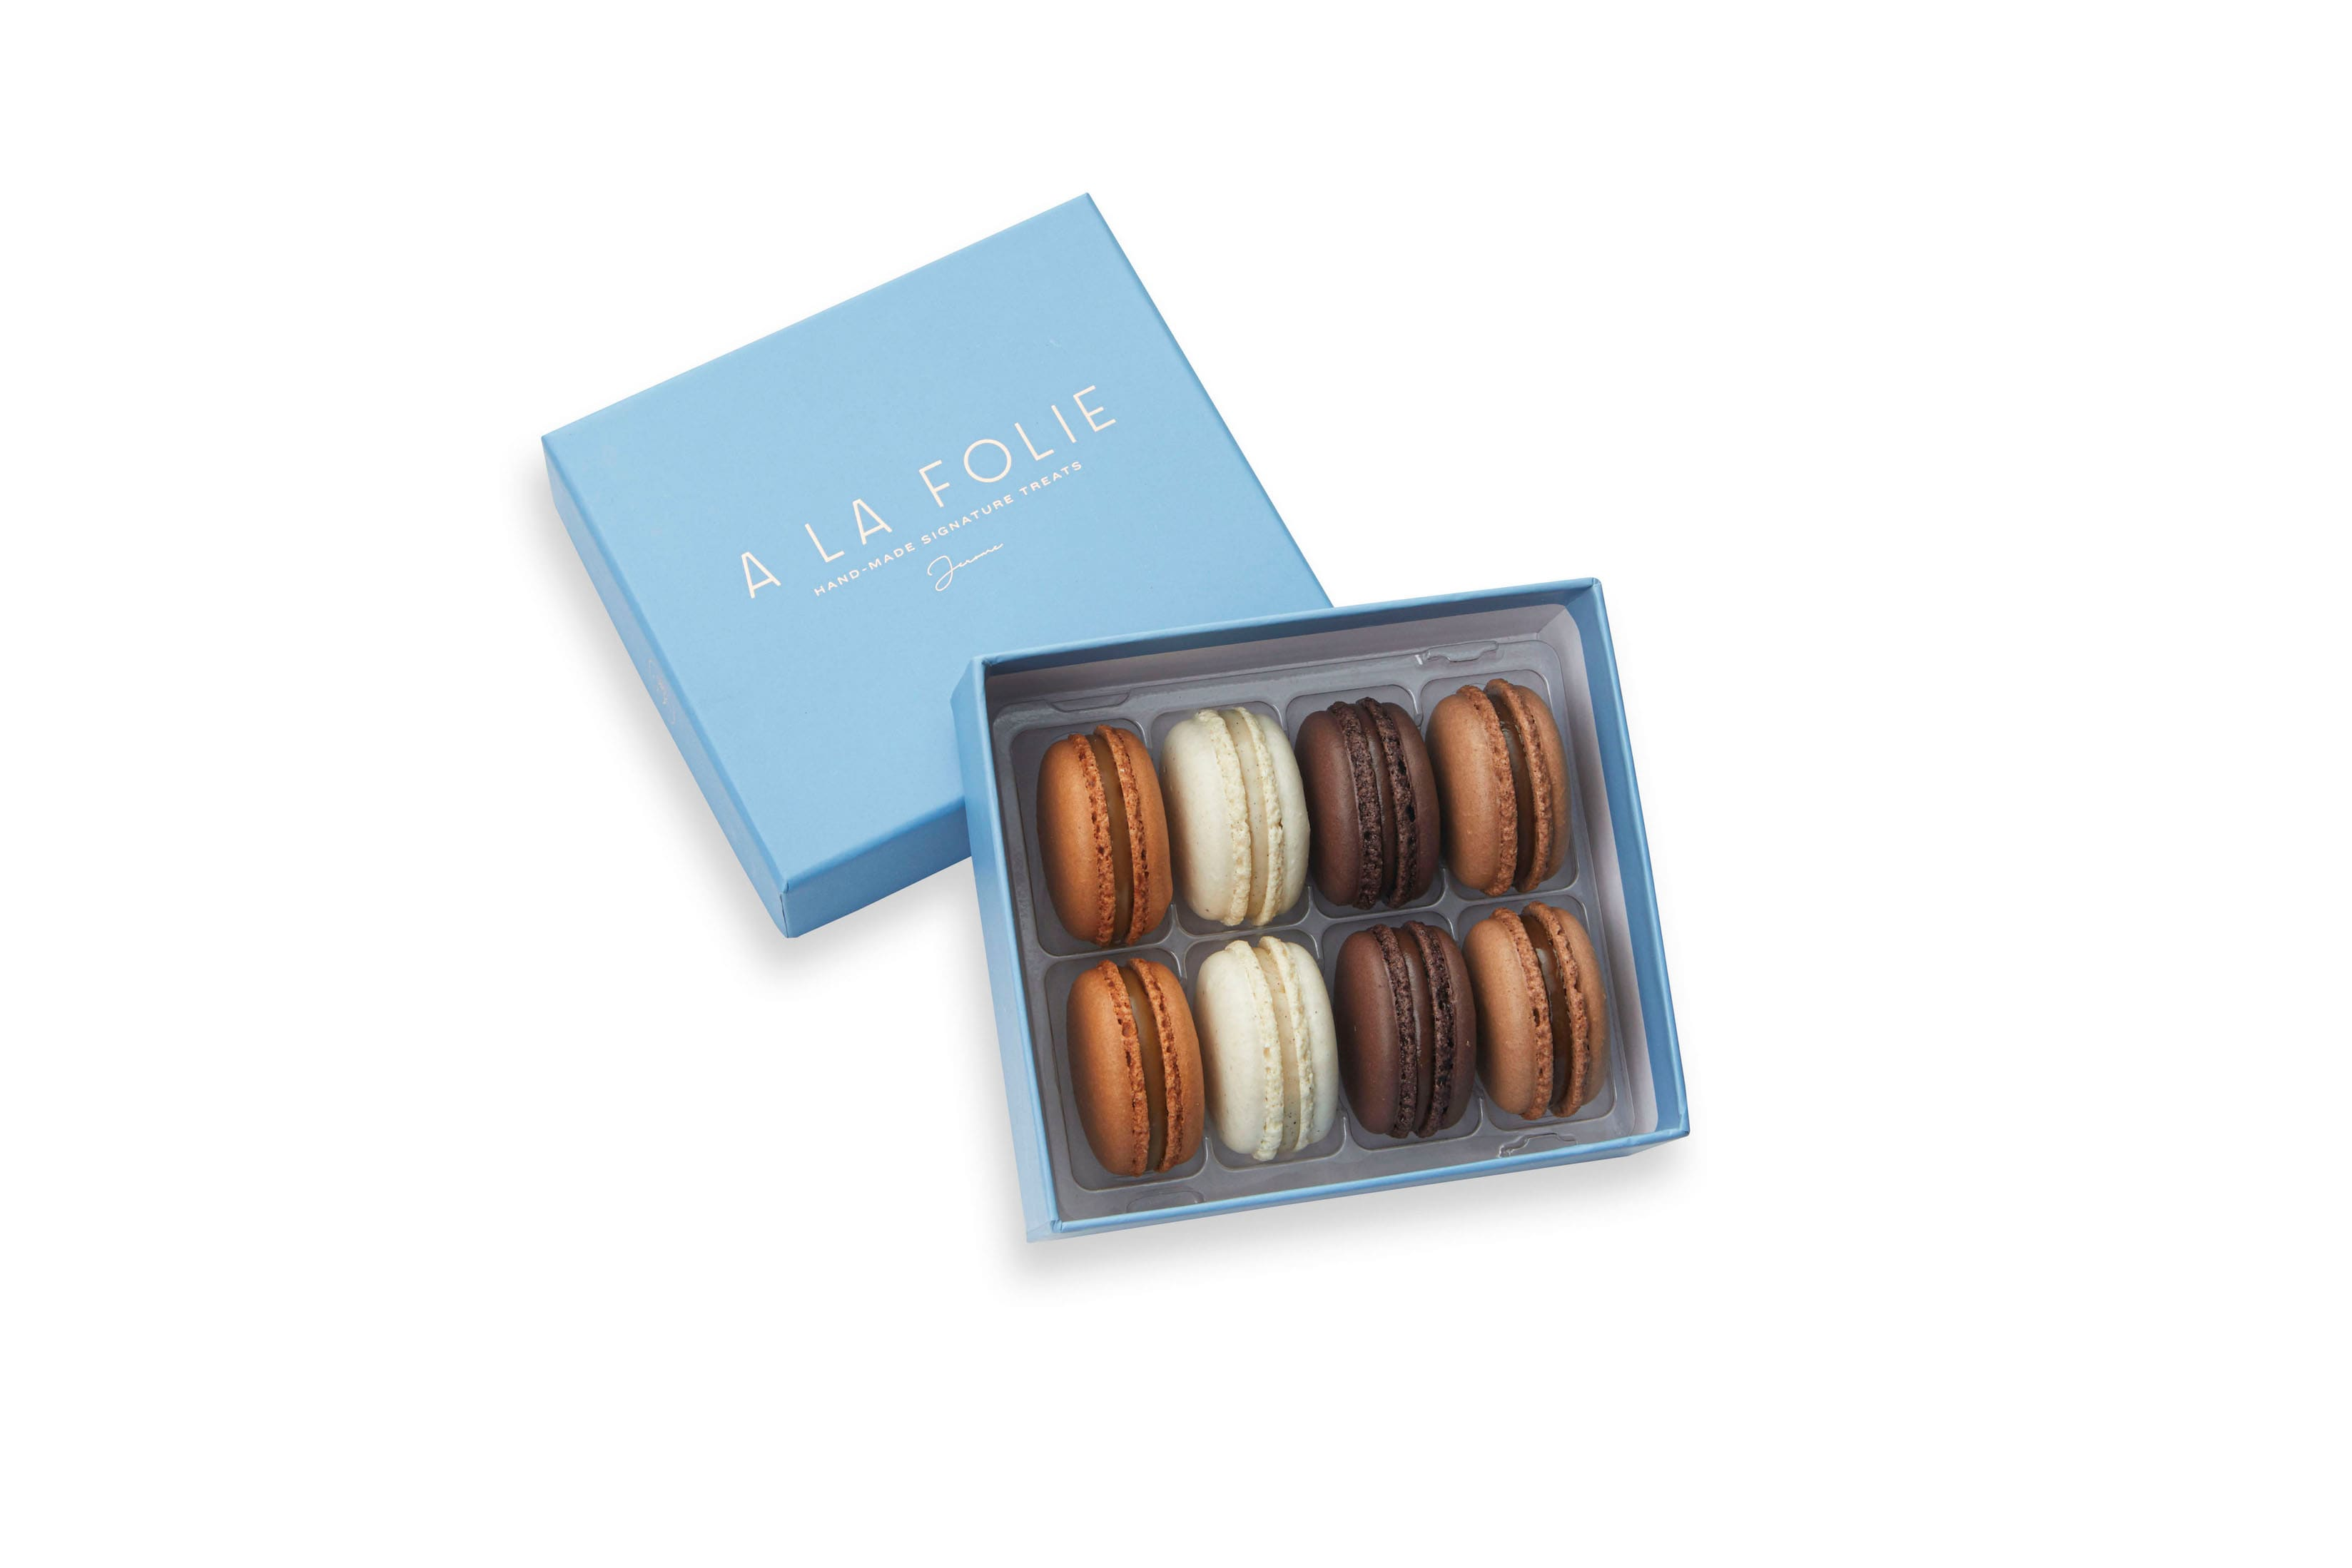 Macarons By A La Folie